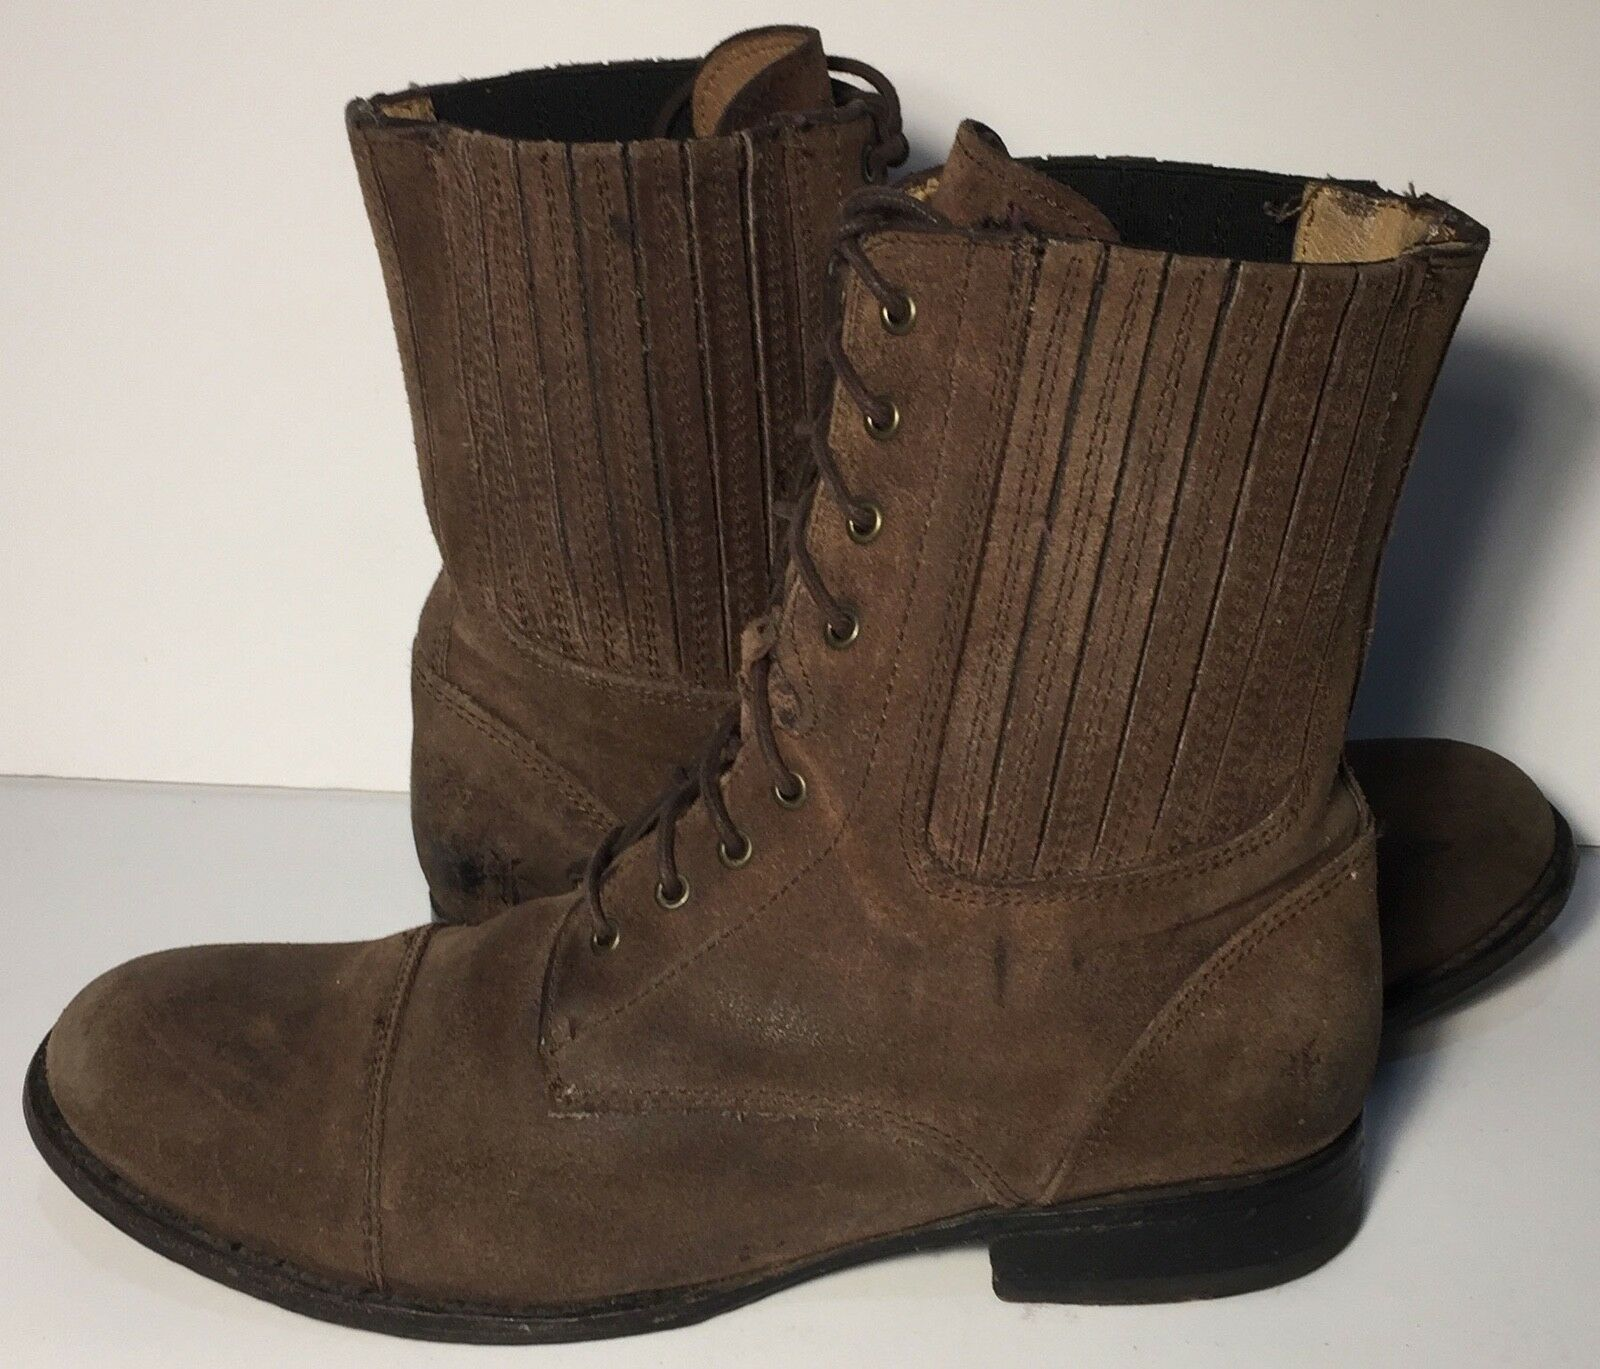 FRYE 76361 Erin Gore Lace up Brown Military Motorcycle Work Boots Women Size 8.5